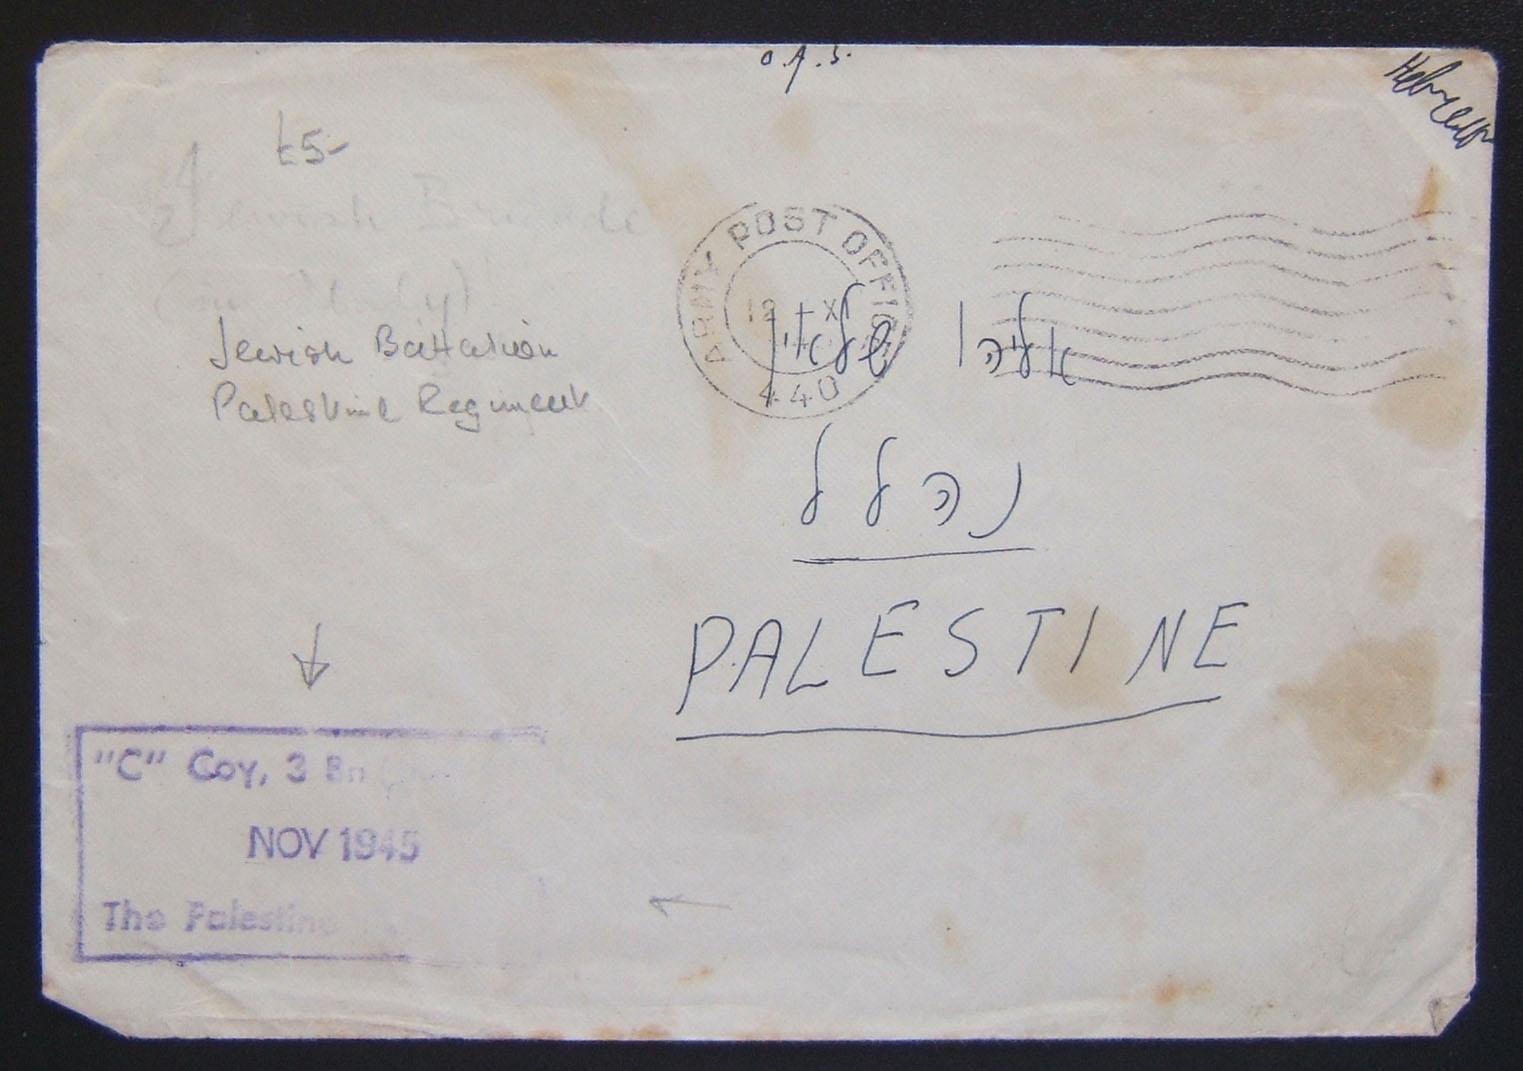 Jewish Brigade mail: stampless cover ex APO 440 (Antwerp?) to NAHALAL (bilingual address), 12 XI 45 and arrived 21 NO 45; with special 'C' Company 3rd battalion (Jewish) Palestine